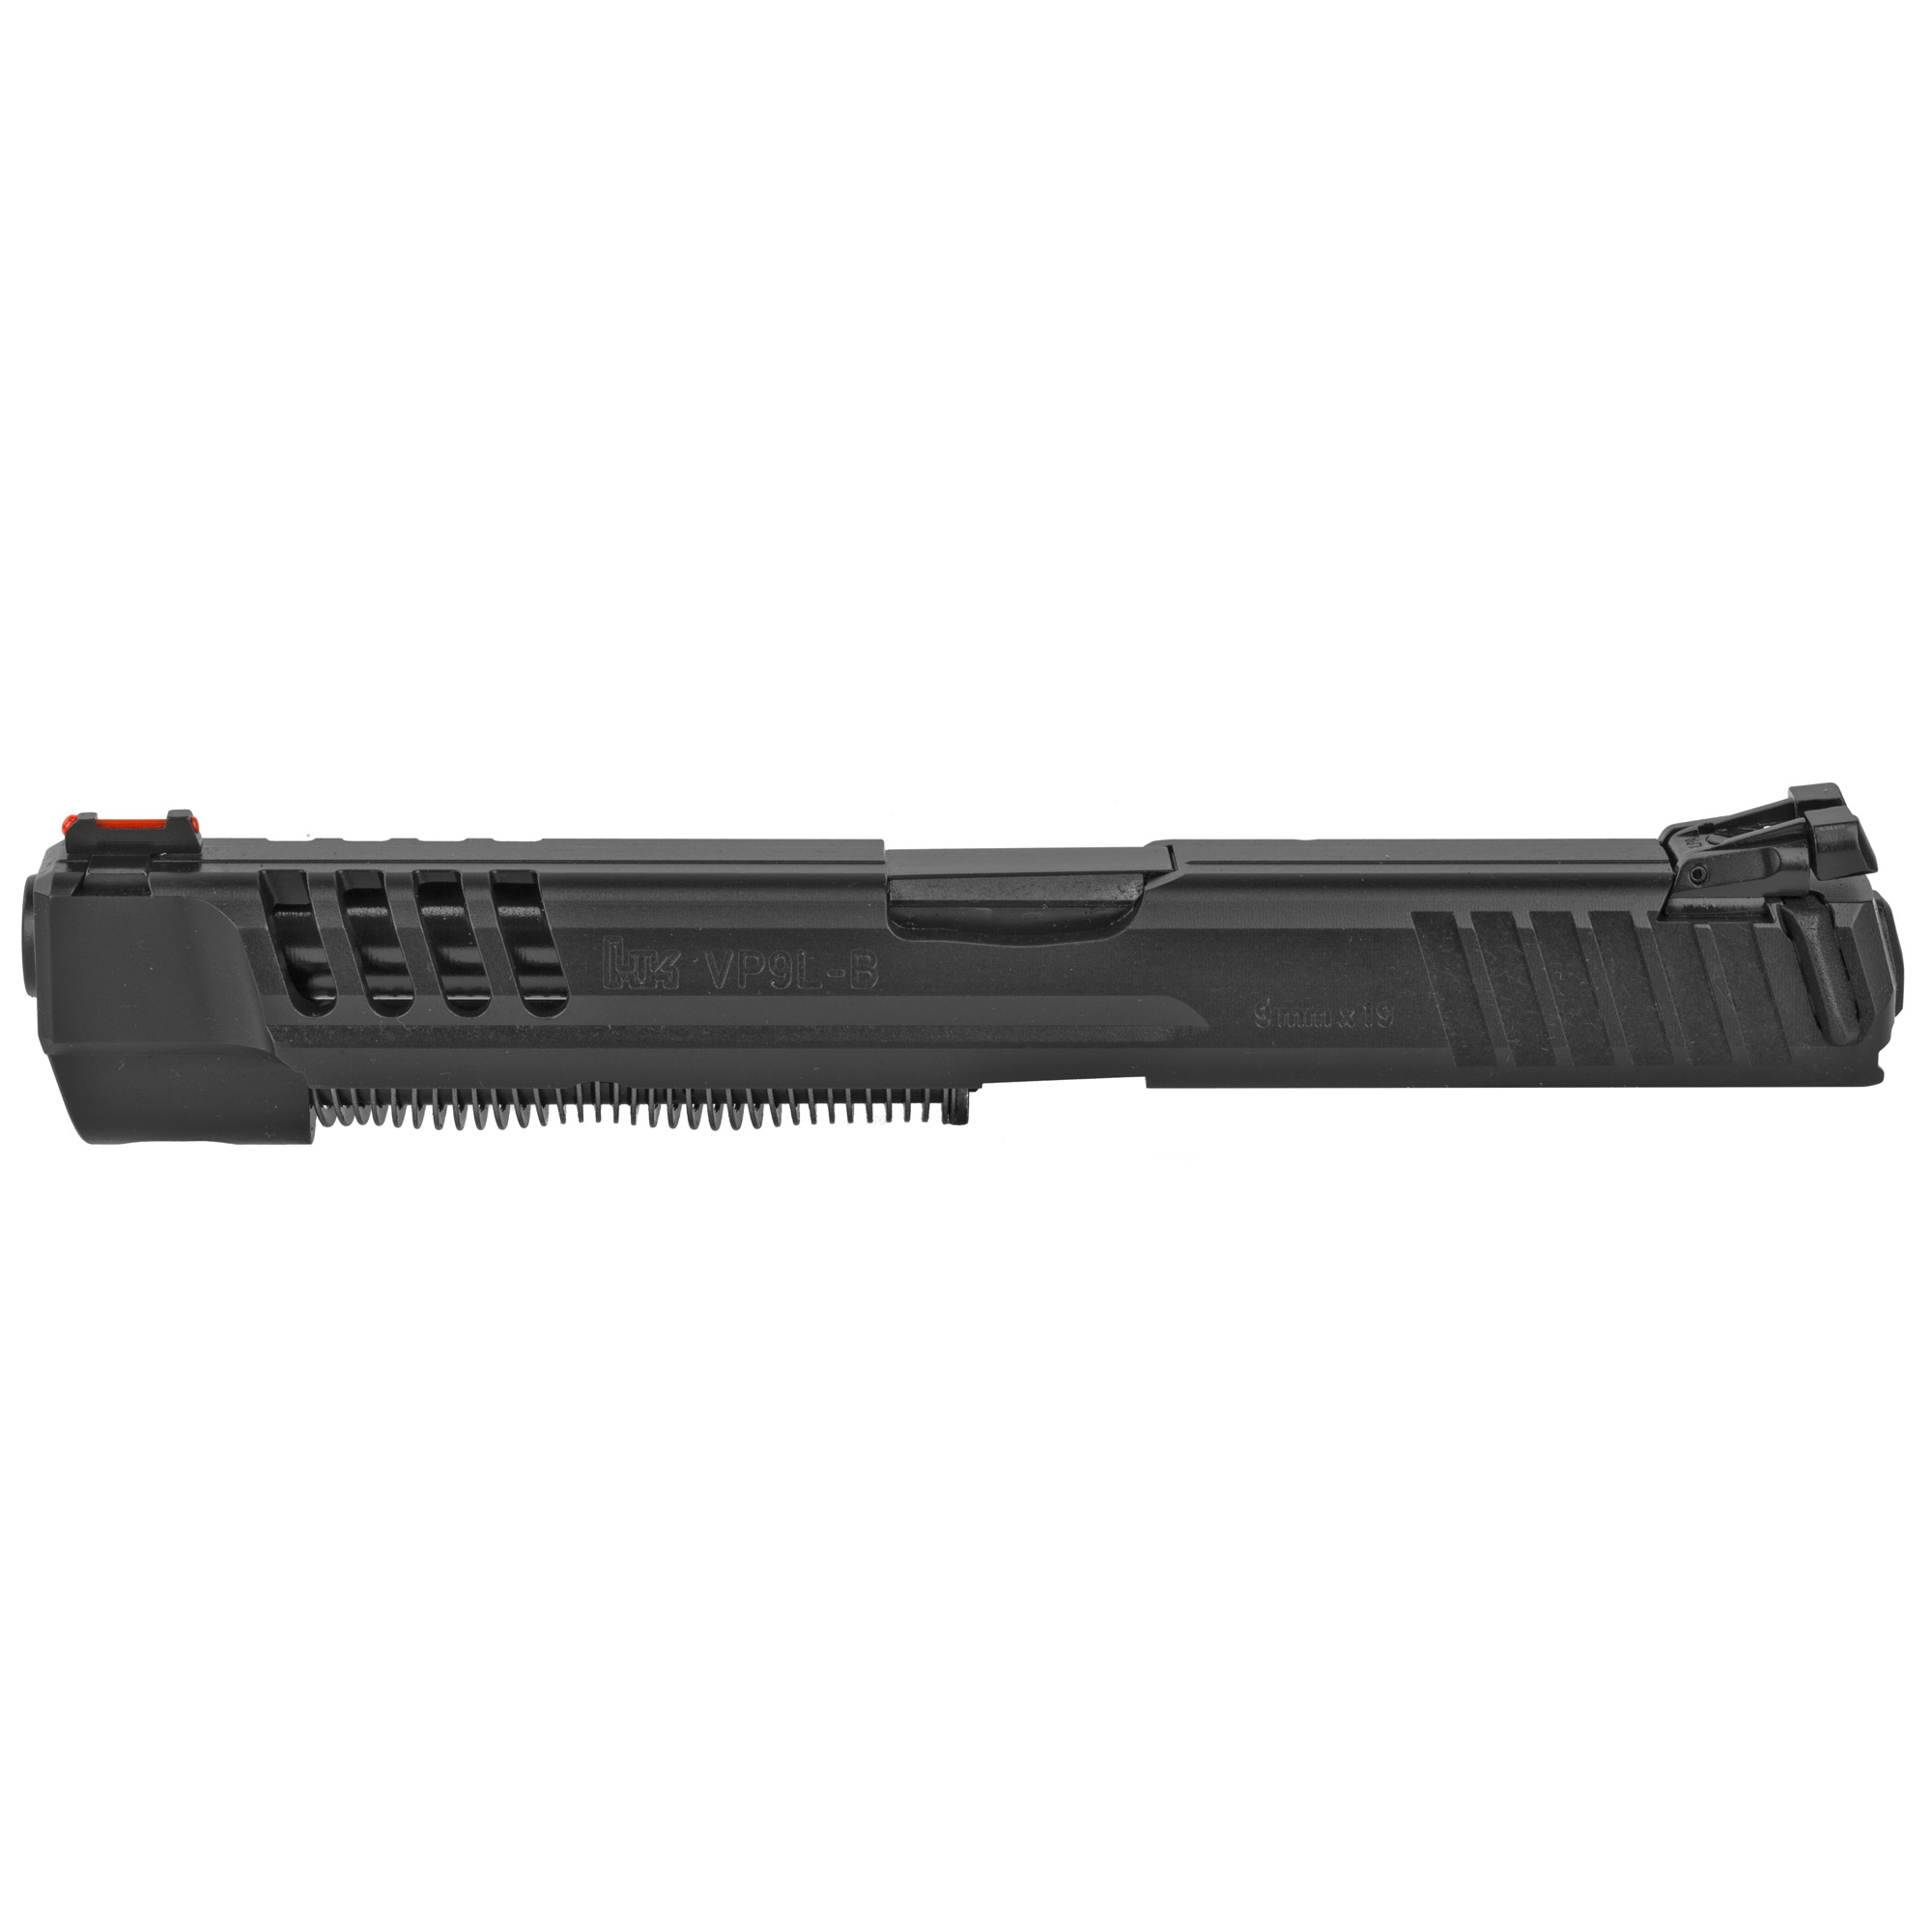 The VP9 long slide kit quickly and easily converts a standard VP9 OR VP9-B to a duty or competition ready long slide model. No additional parts or tools are needed for assembly. Just swap out the whole slide assembly and go shoot.